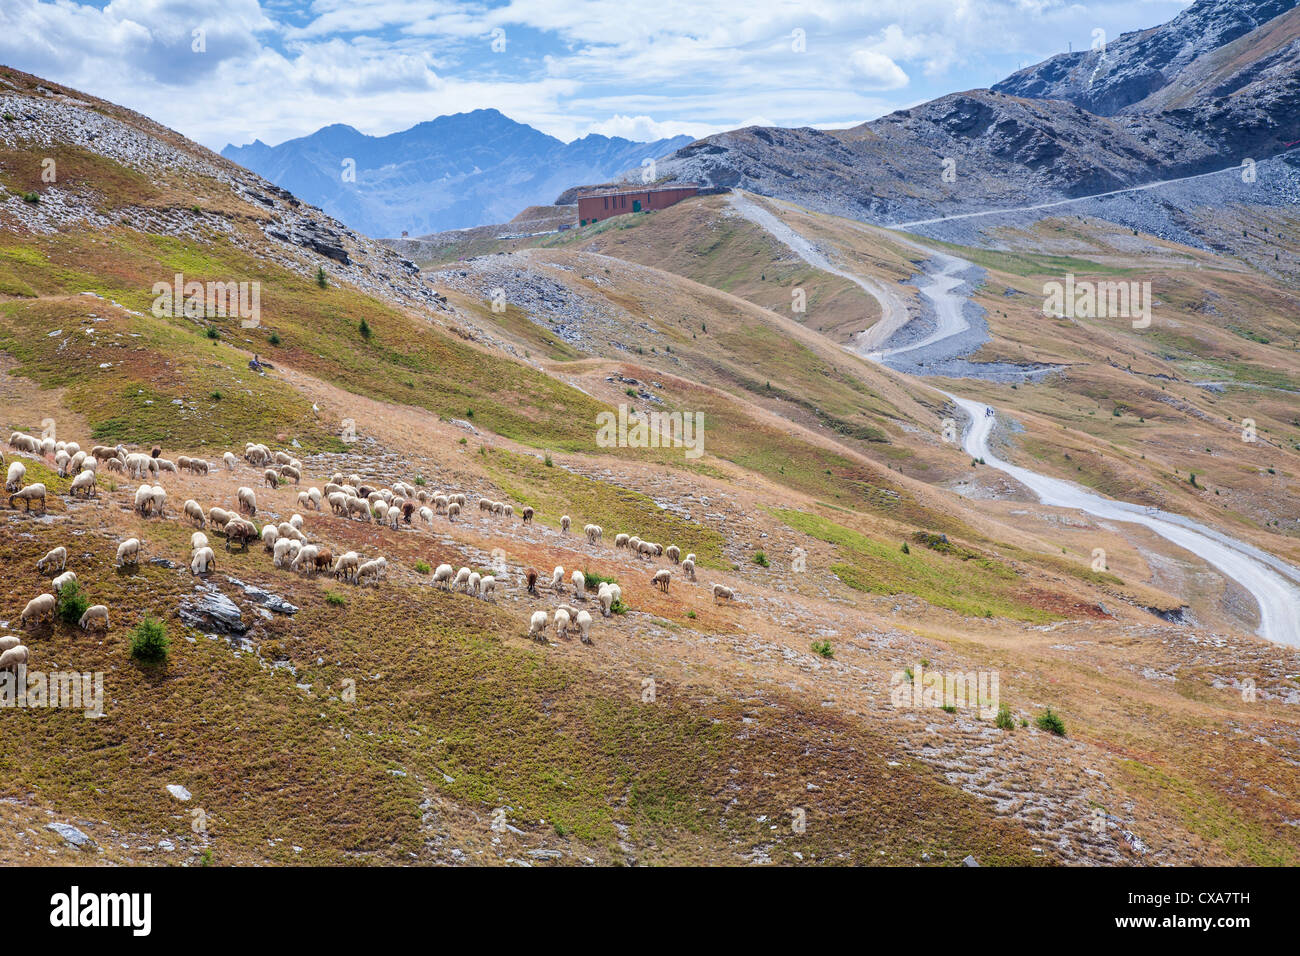 sestriere italy summer stockfotos sestriere italy summer bilder alamy. Black Bedroom Furniture Sets. Home Design Ideas